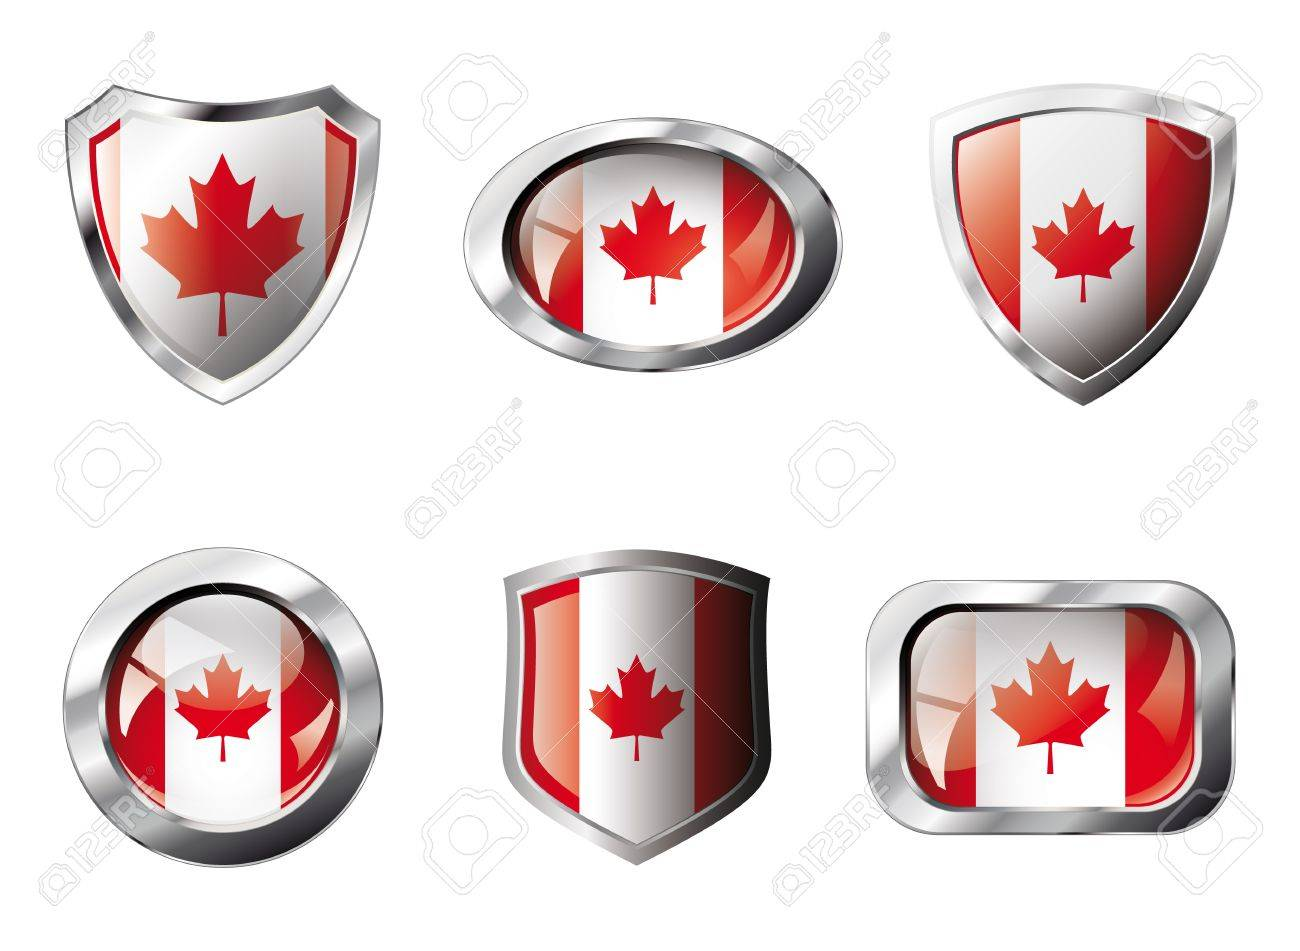 Canada set shiny buttons and shields of flag with metal frame - illustration. Isolated abstract object against white background. Stock Photo - 8788306